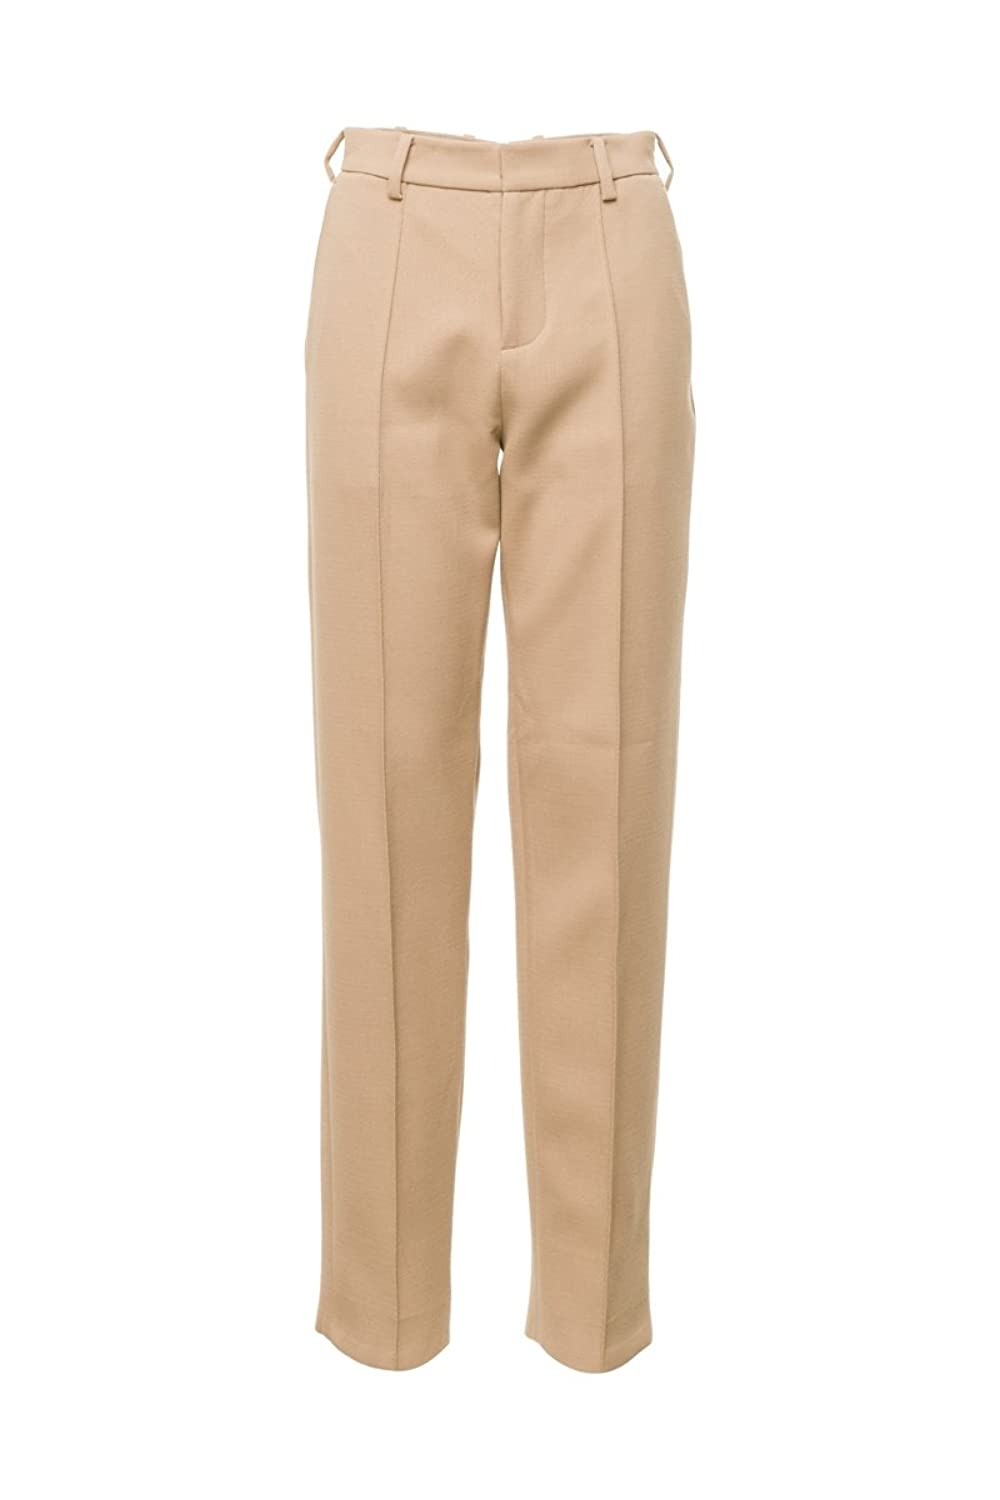 Frontrowshop Tapered Capri Pants [ZDC_3049789] - $29.99 : Shop